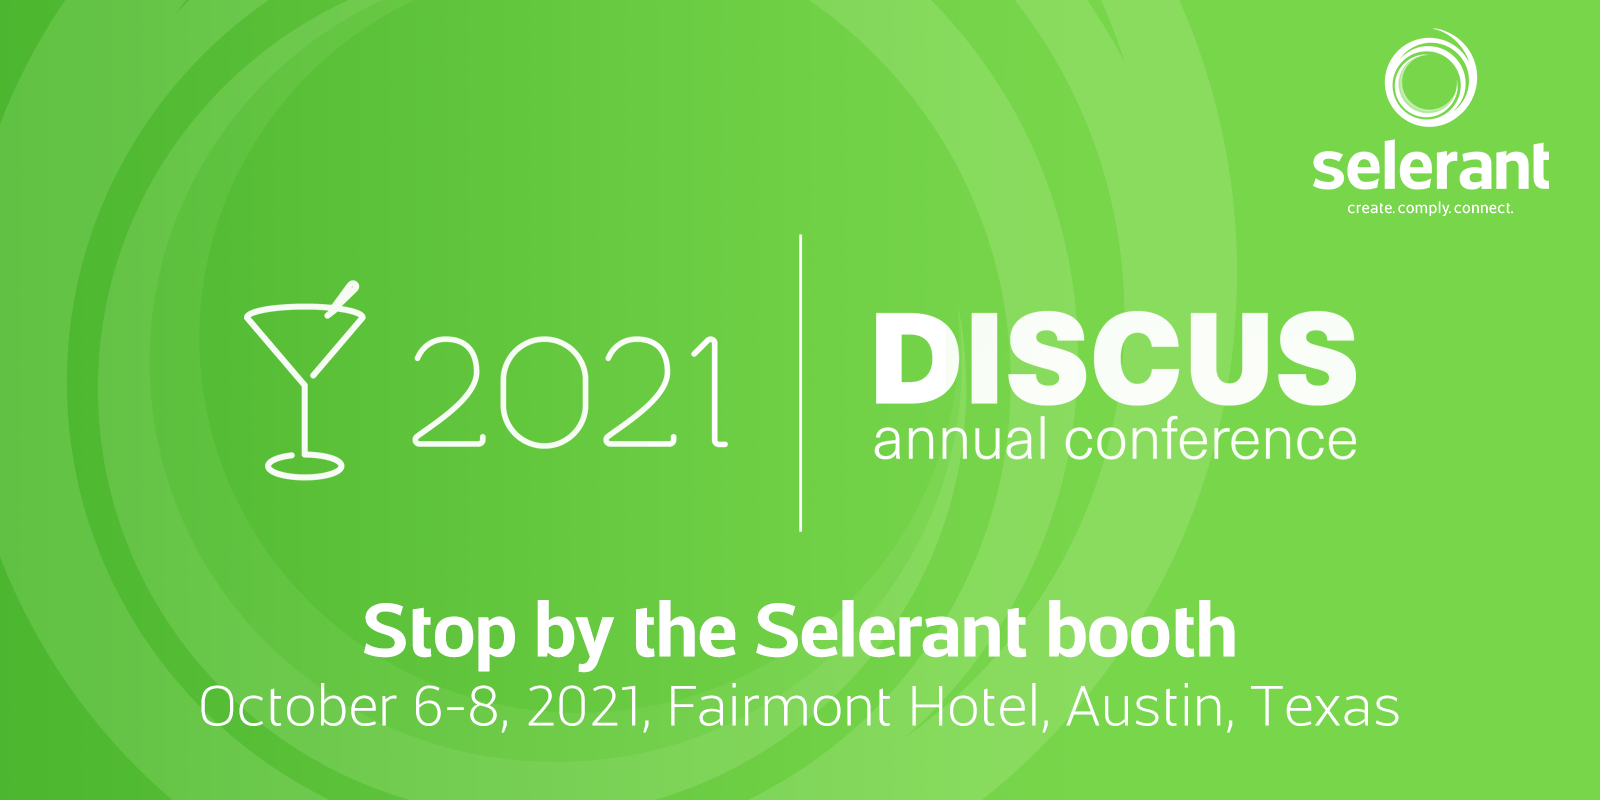 Selerant-discus-user-conference